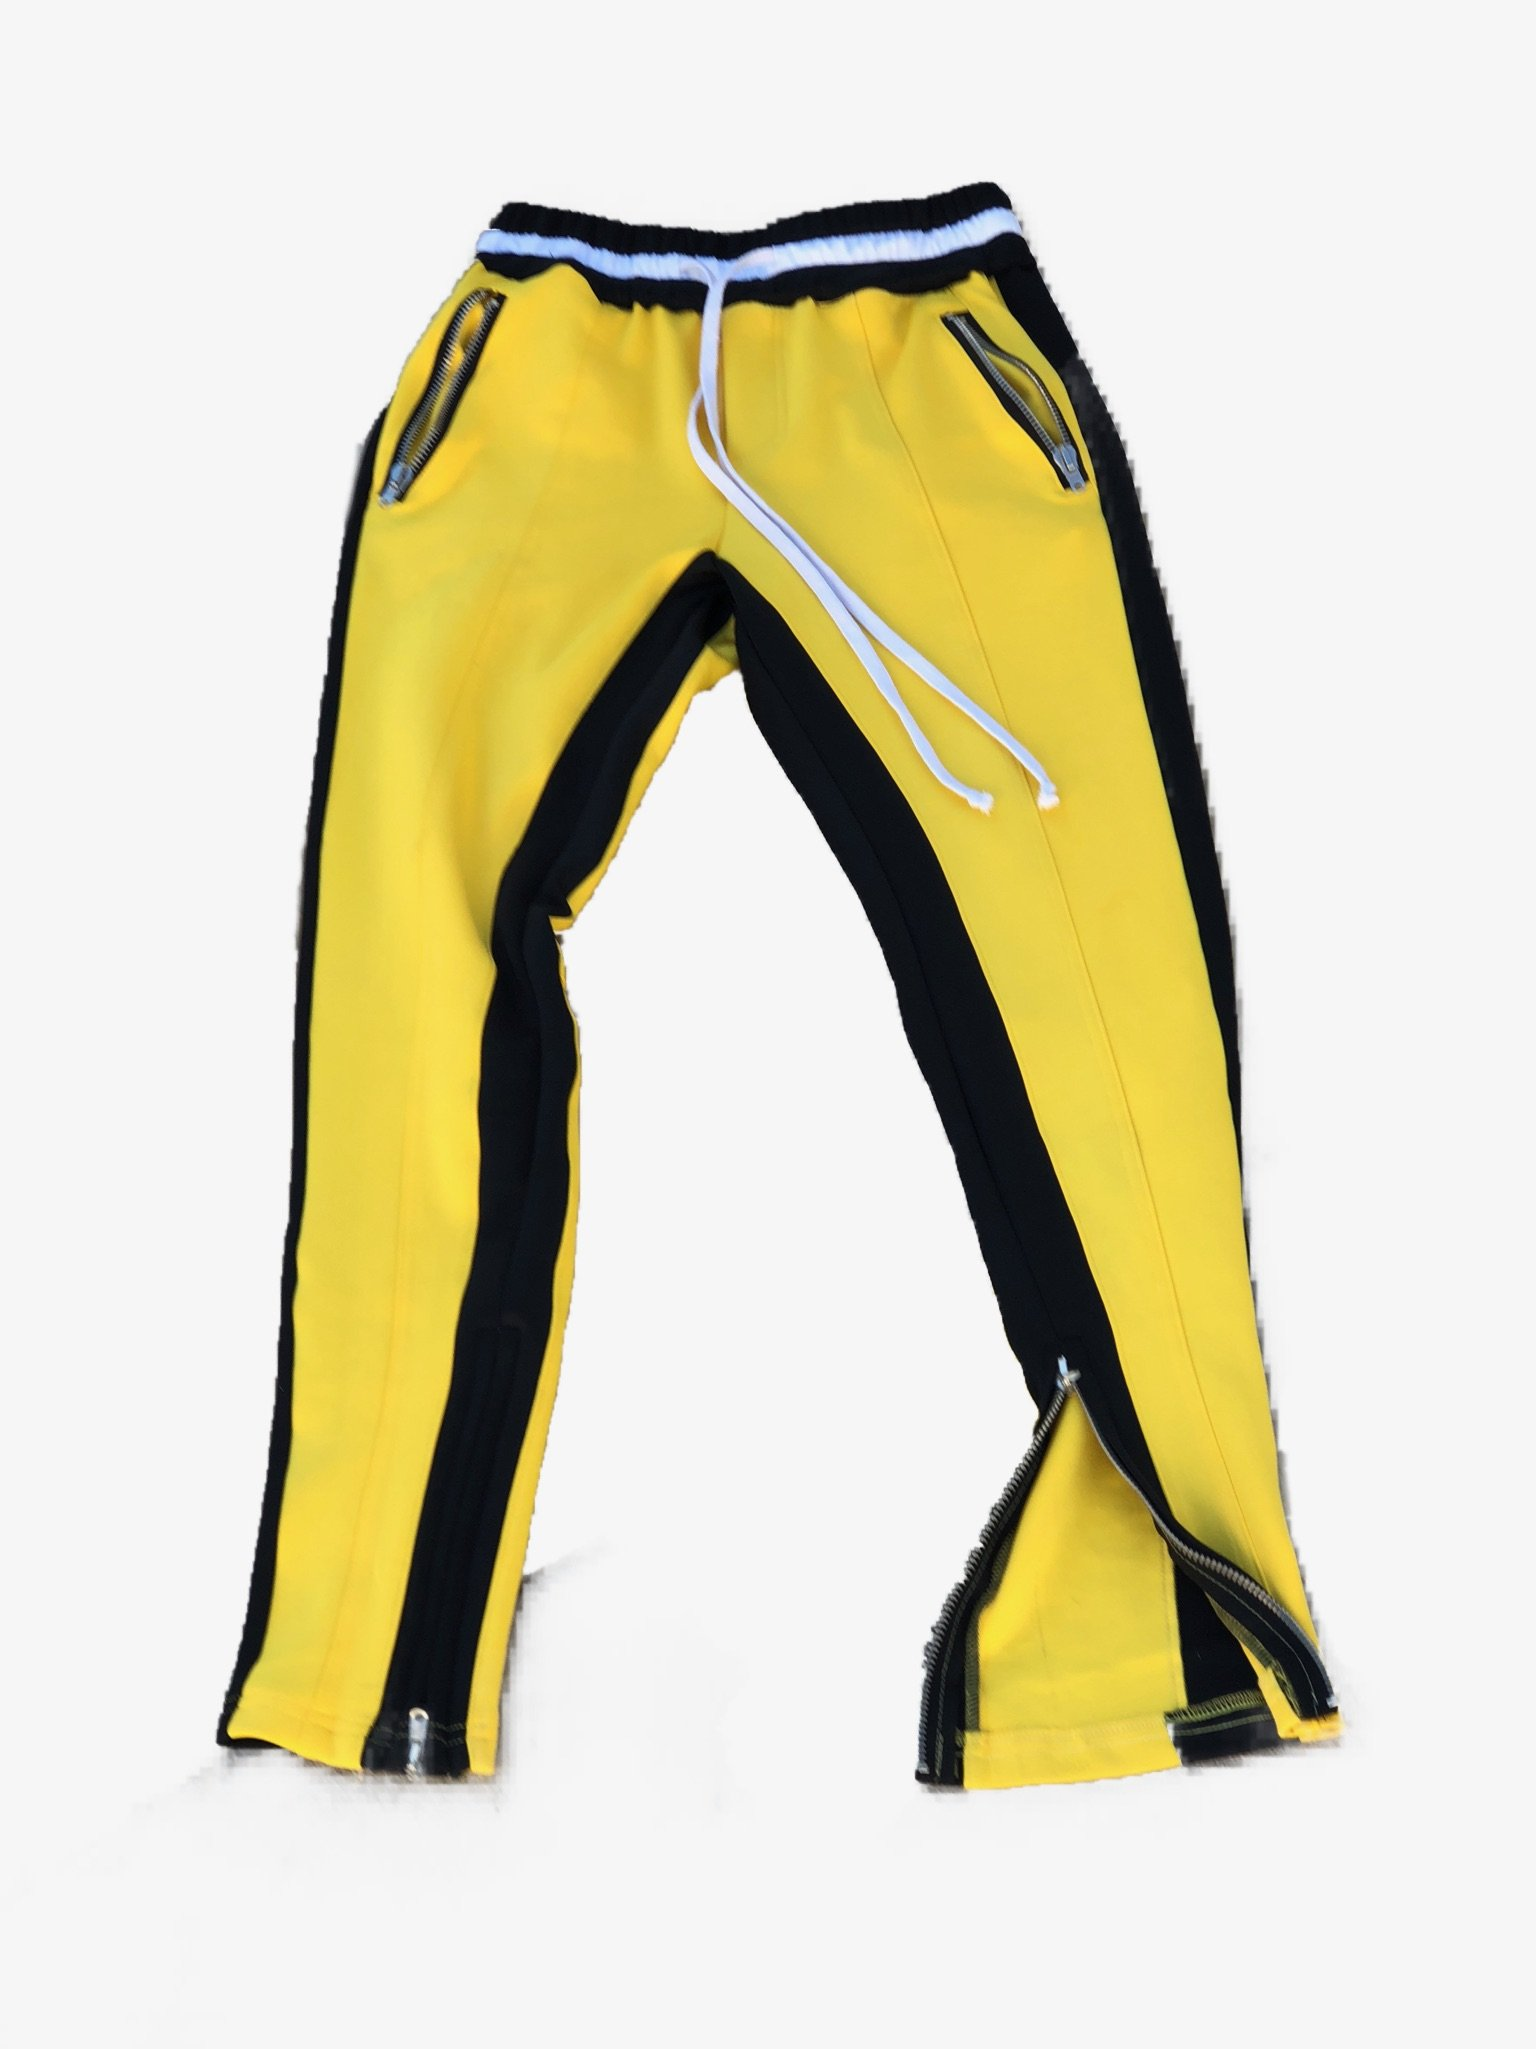 Yellow/Black Double Striped Fear of God Inspired Trackpants w/ RIRI Zippers